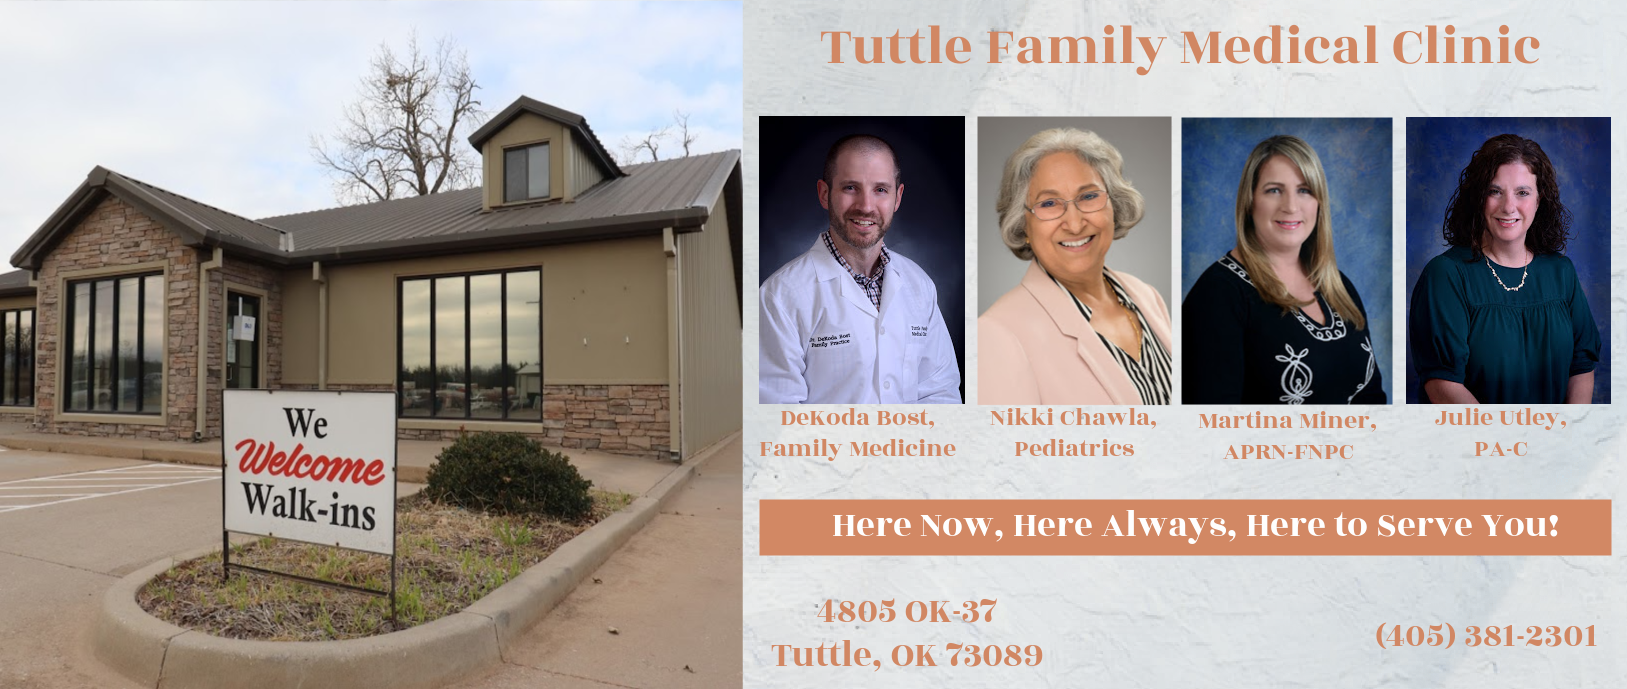 Banner picture of Tuttle Family Medical Clinic (front view shot) Banner picture of four Physicians self portraits. - Dekoda Bost, Family Medicine  -Nikki Chawla, Pediatrics -Martina Miner, APRN-FNPC Julie Uttley- PA-C  Here Now, Here Always, Here to Serve You!  4805 OK-37 Tuttle, OK 73089 (405)381-2301